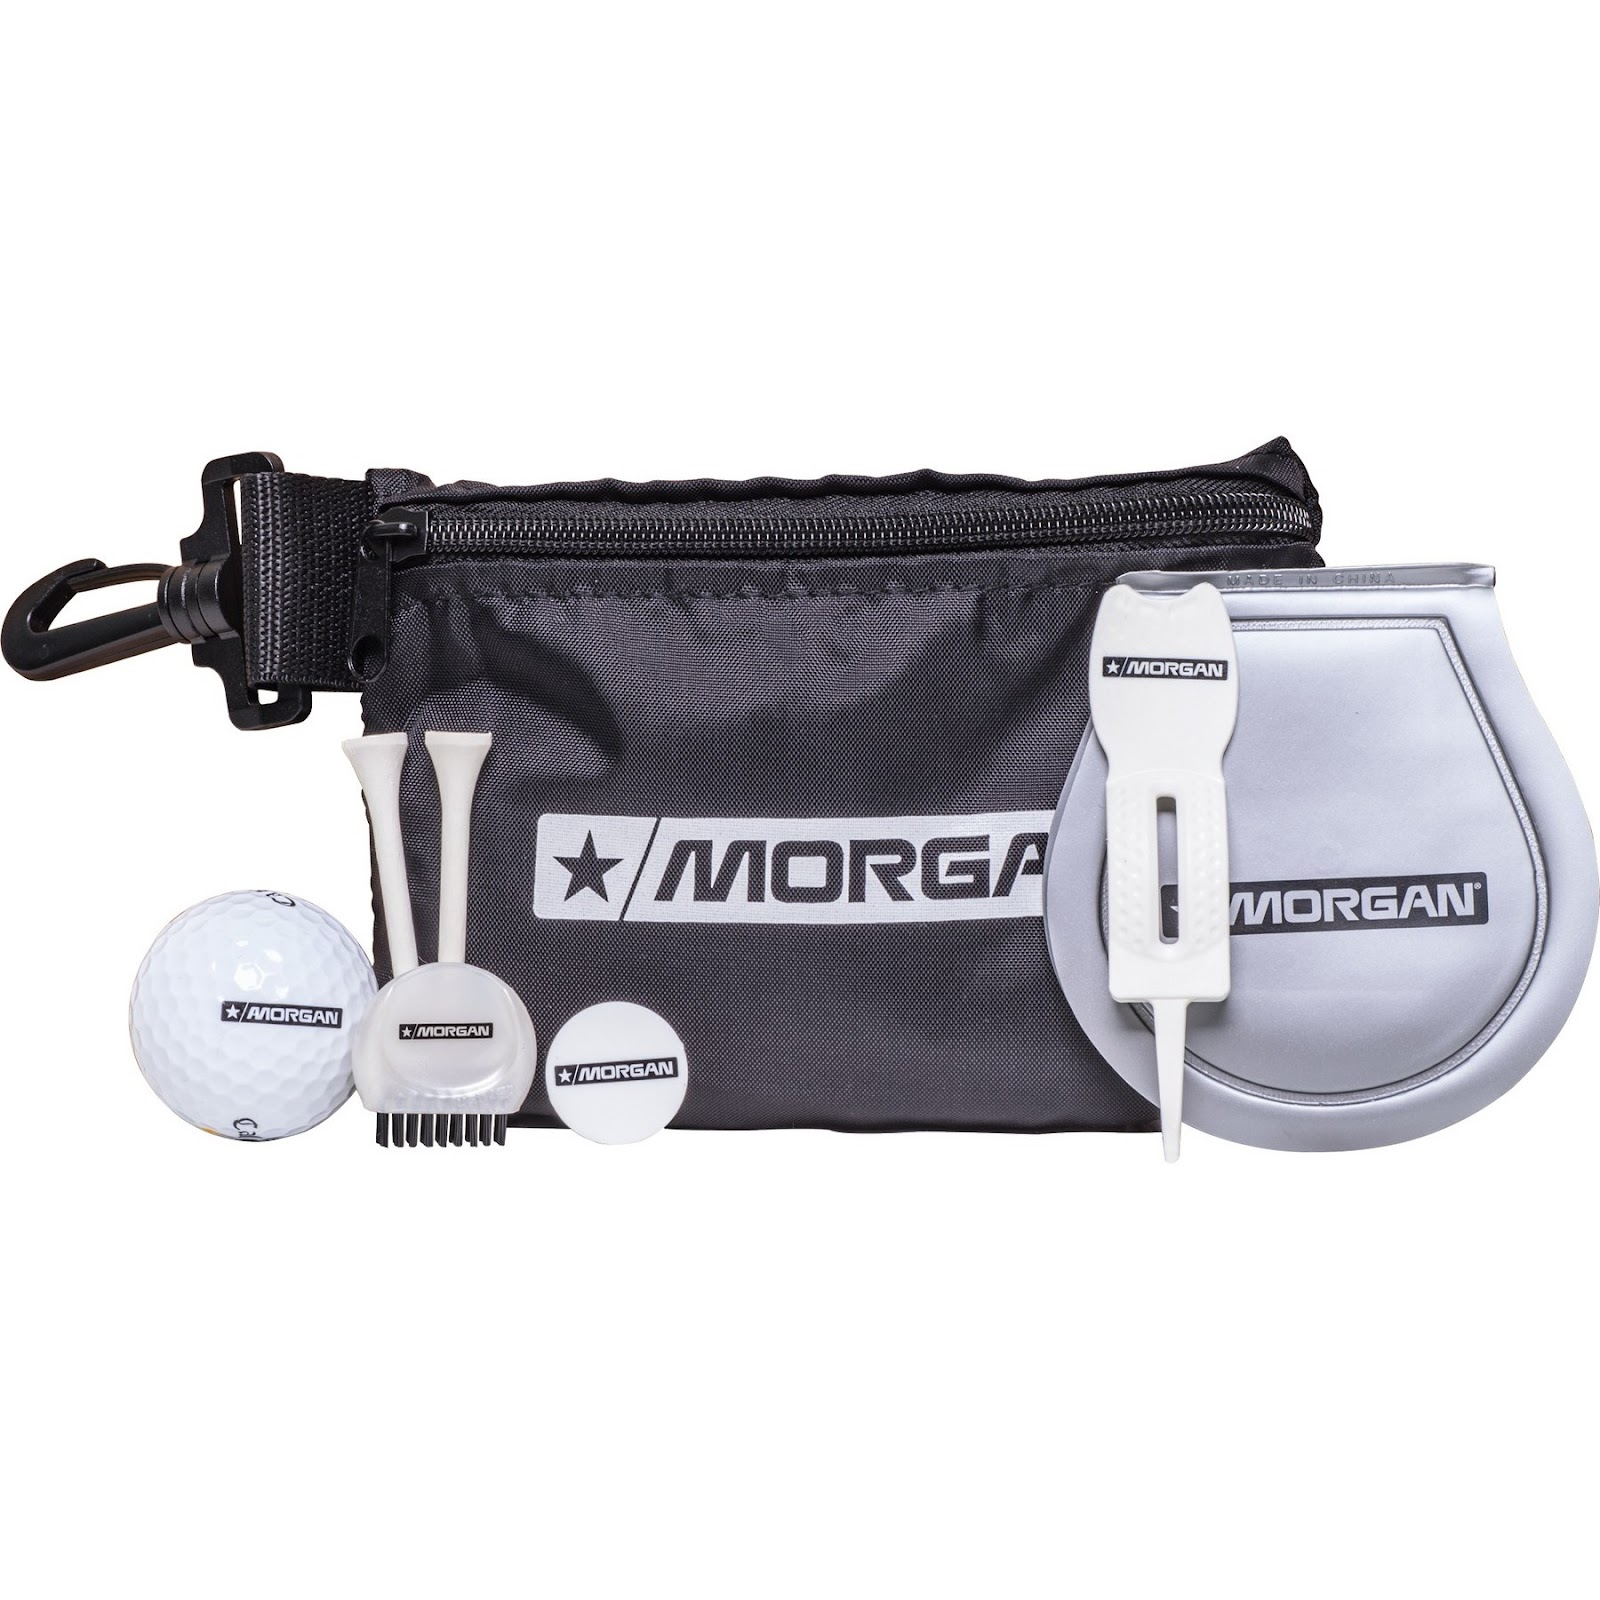 promotional Golf product